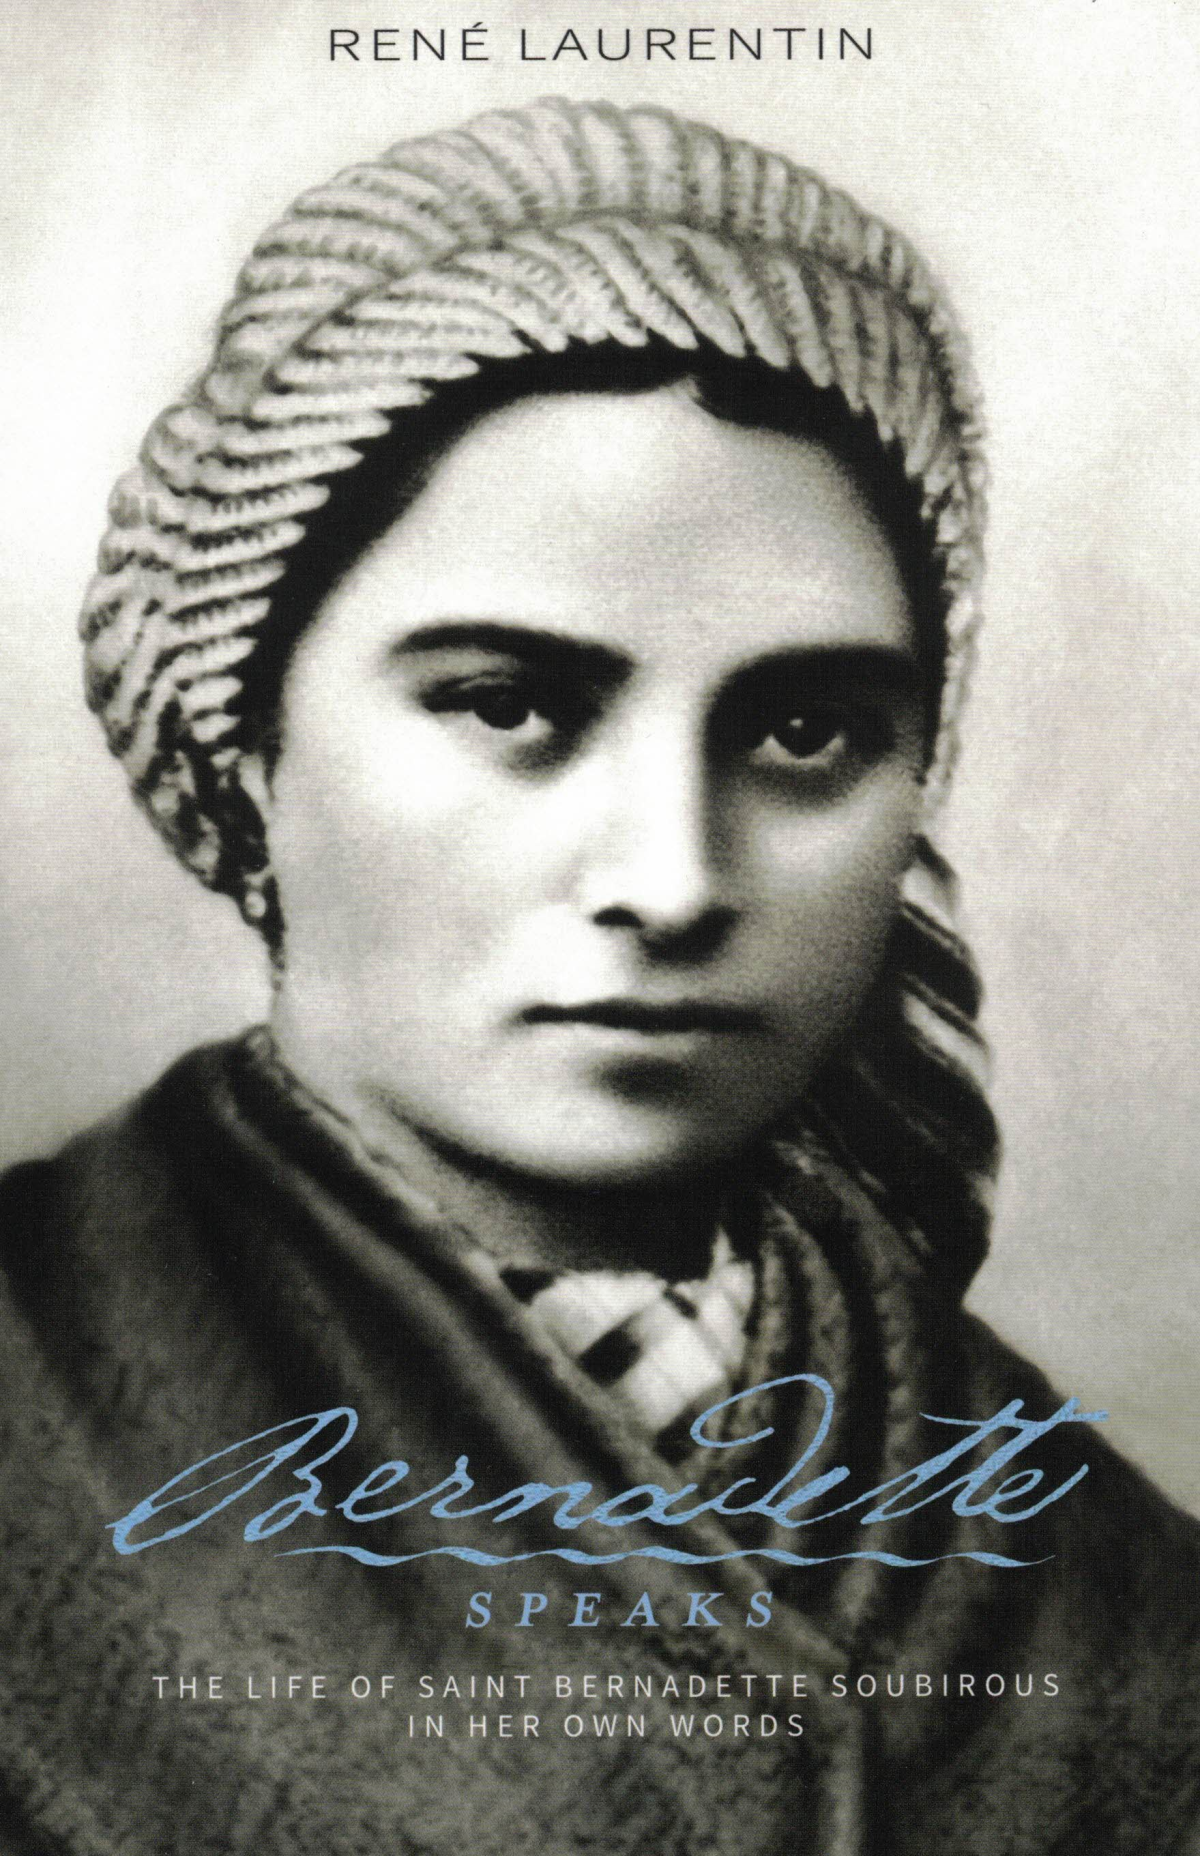 Bernadette Speaks - A Life of Saint Bernadette Soubirous in Her Own Words